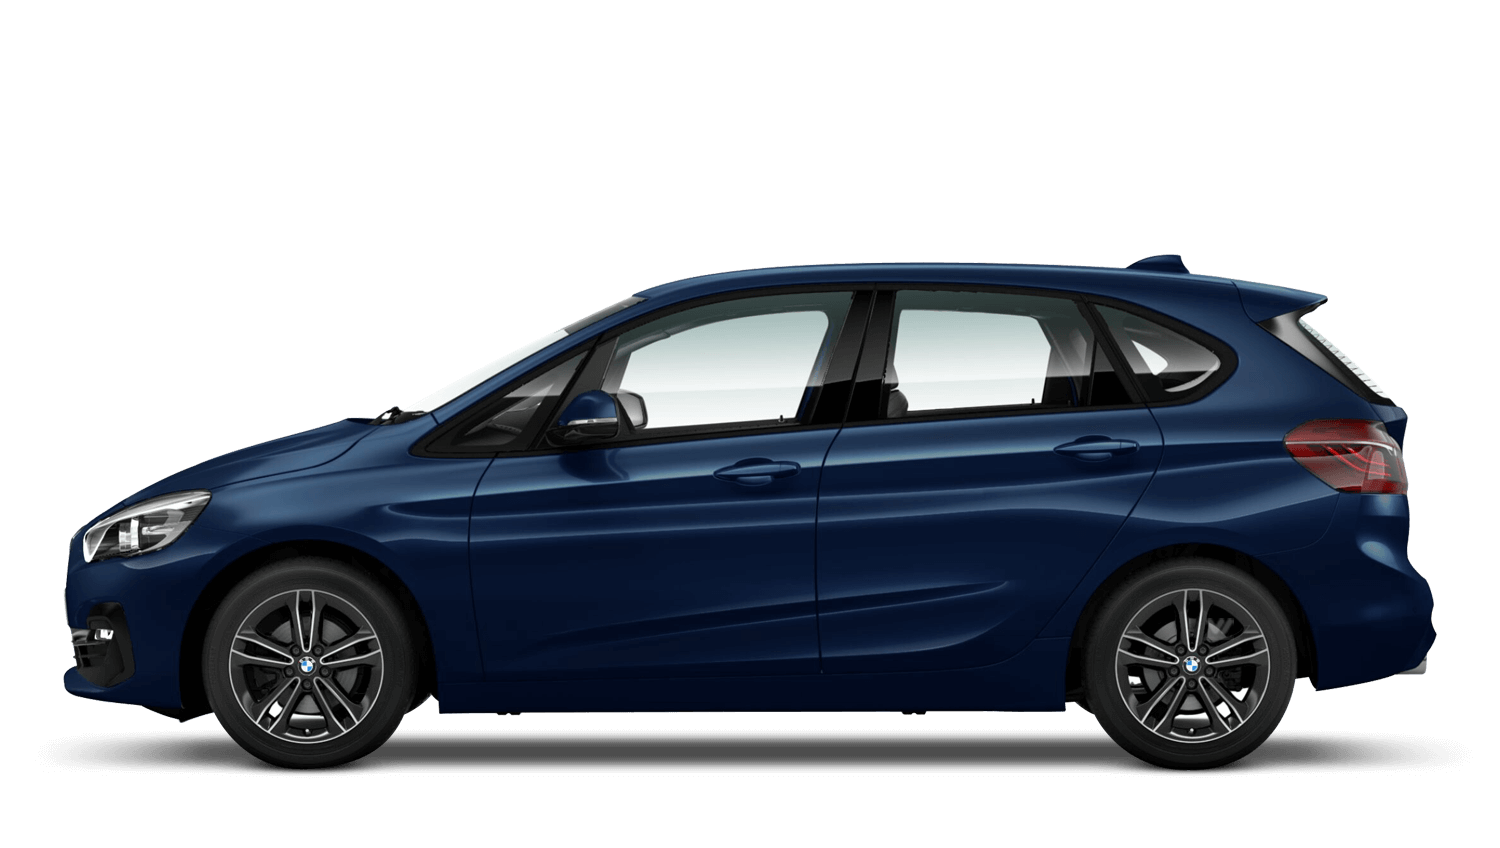 Mediterranean Blue (Metallic) BMW 2 Series Active Tourer